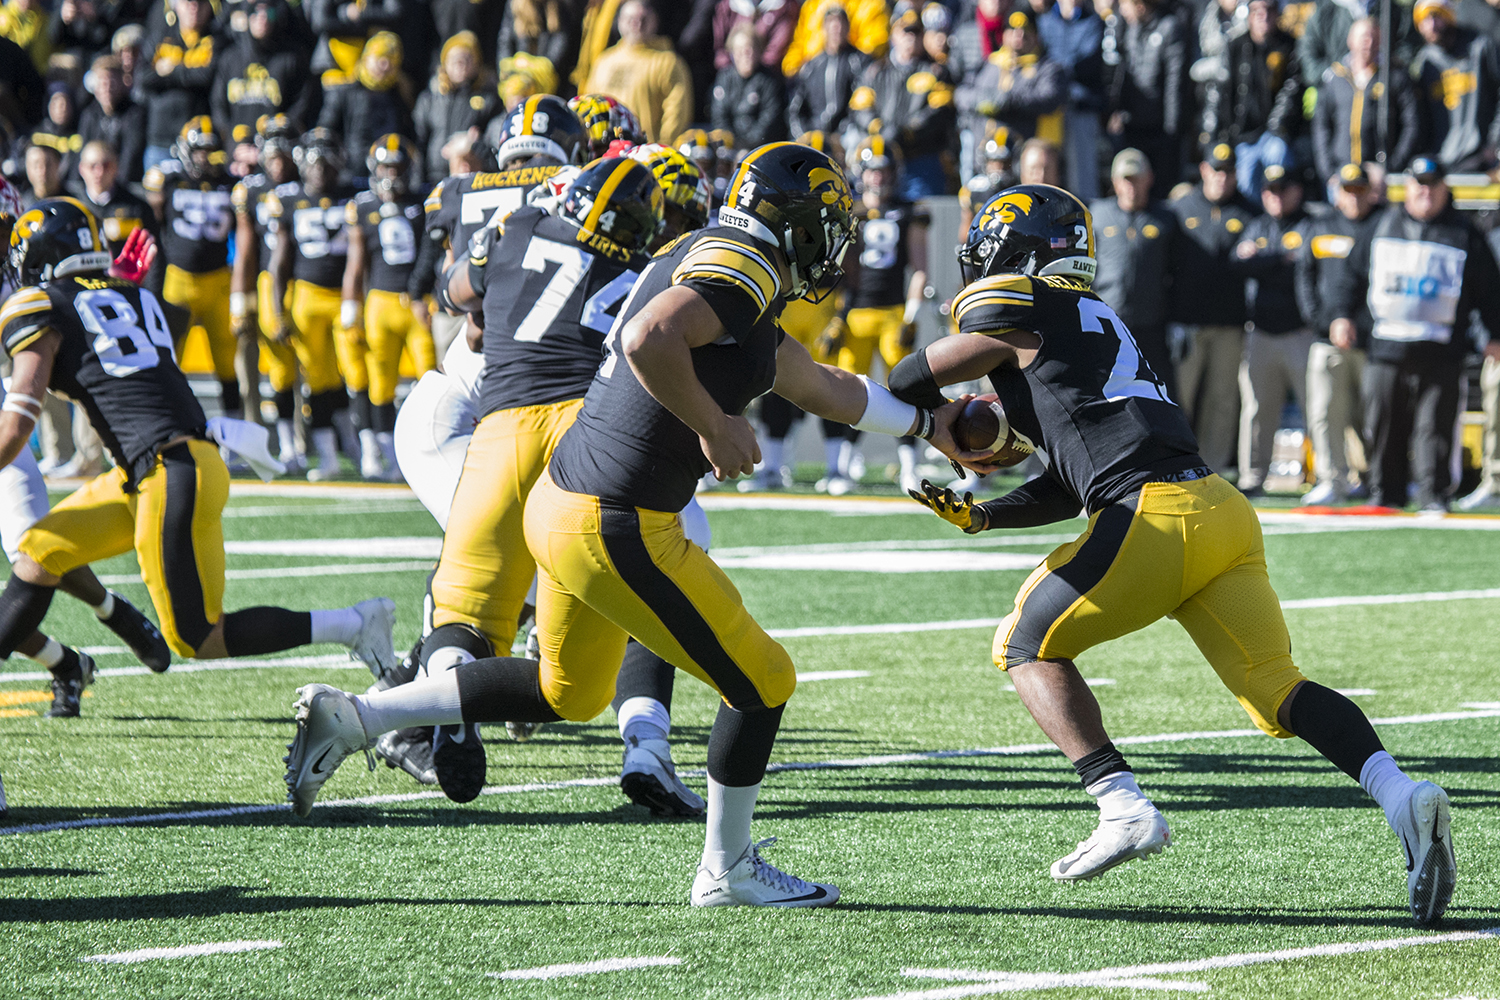 Iowa+quarterback+Nate+Stanley+hands+the+ball+off+to+running+back+Ivory+Kelley-Martin+during+a+football+game+between+Iowa+and+Maryland+in+Kinnick+Stadium+on+Saturday%2C+October+20%2C+2018.+The+Hawkeyes+defeated+the+Terrapins%2C+23-0.+